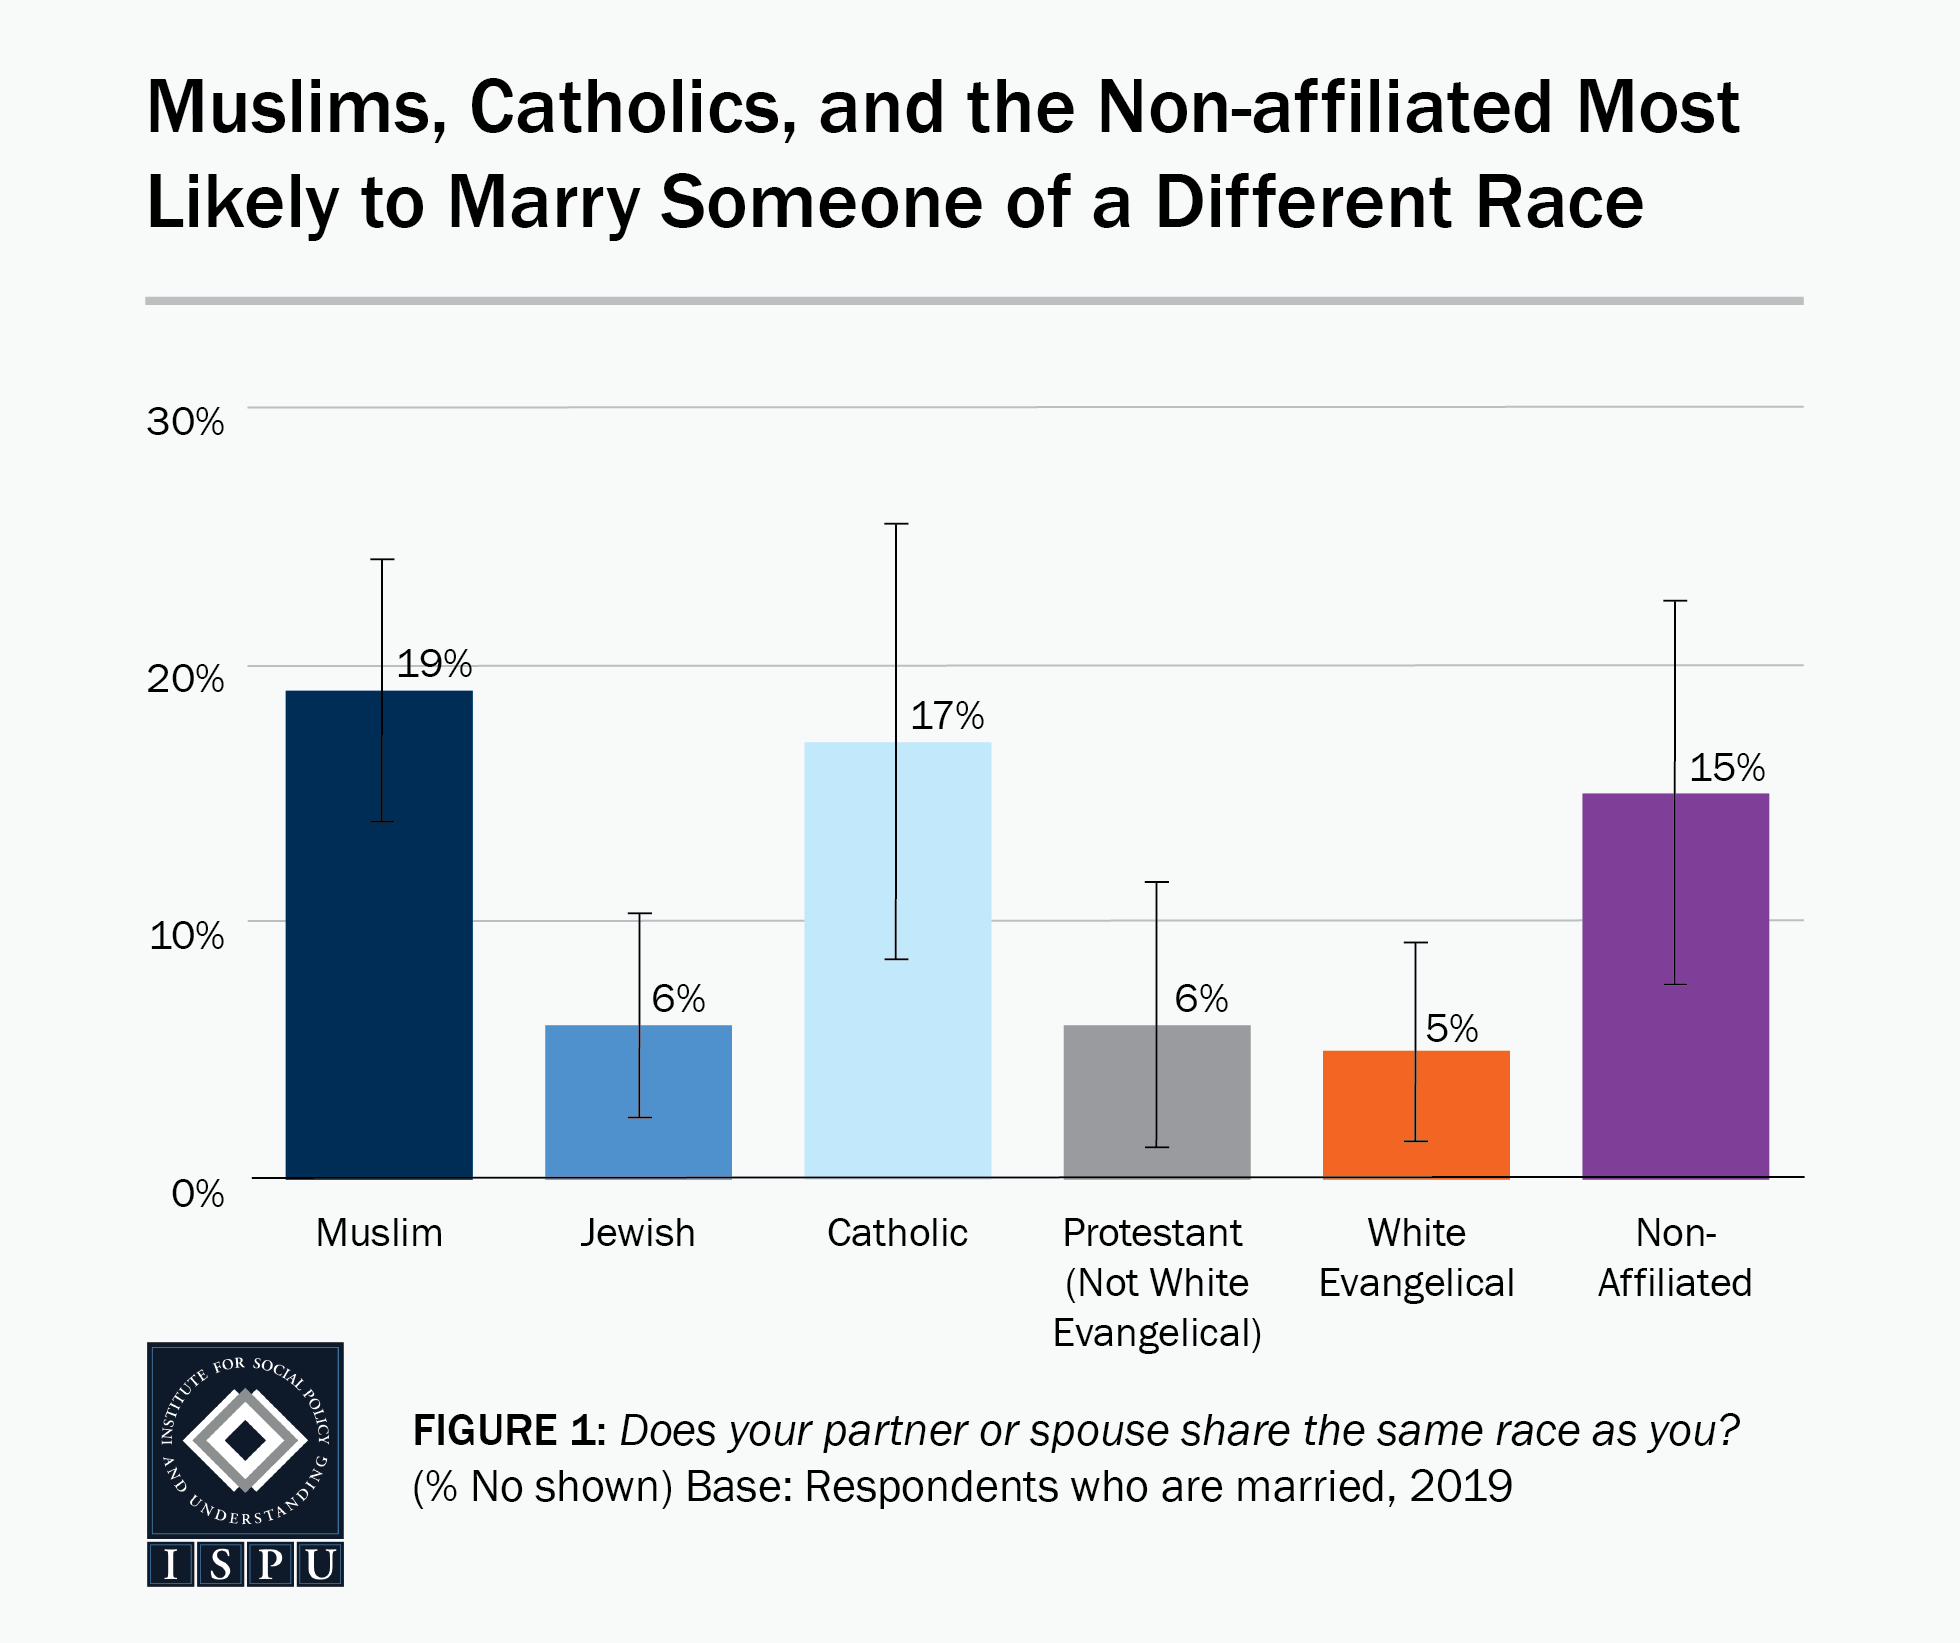 Figure 1: A bar graph showing that Muslims (19%), Catholics (17%), and the nonaffiliated (15%) are the most likely faith groups to marry someone of a different race